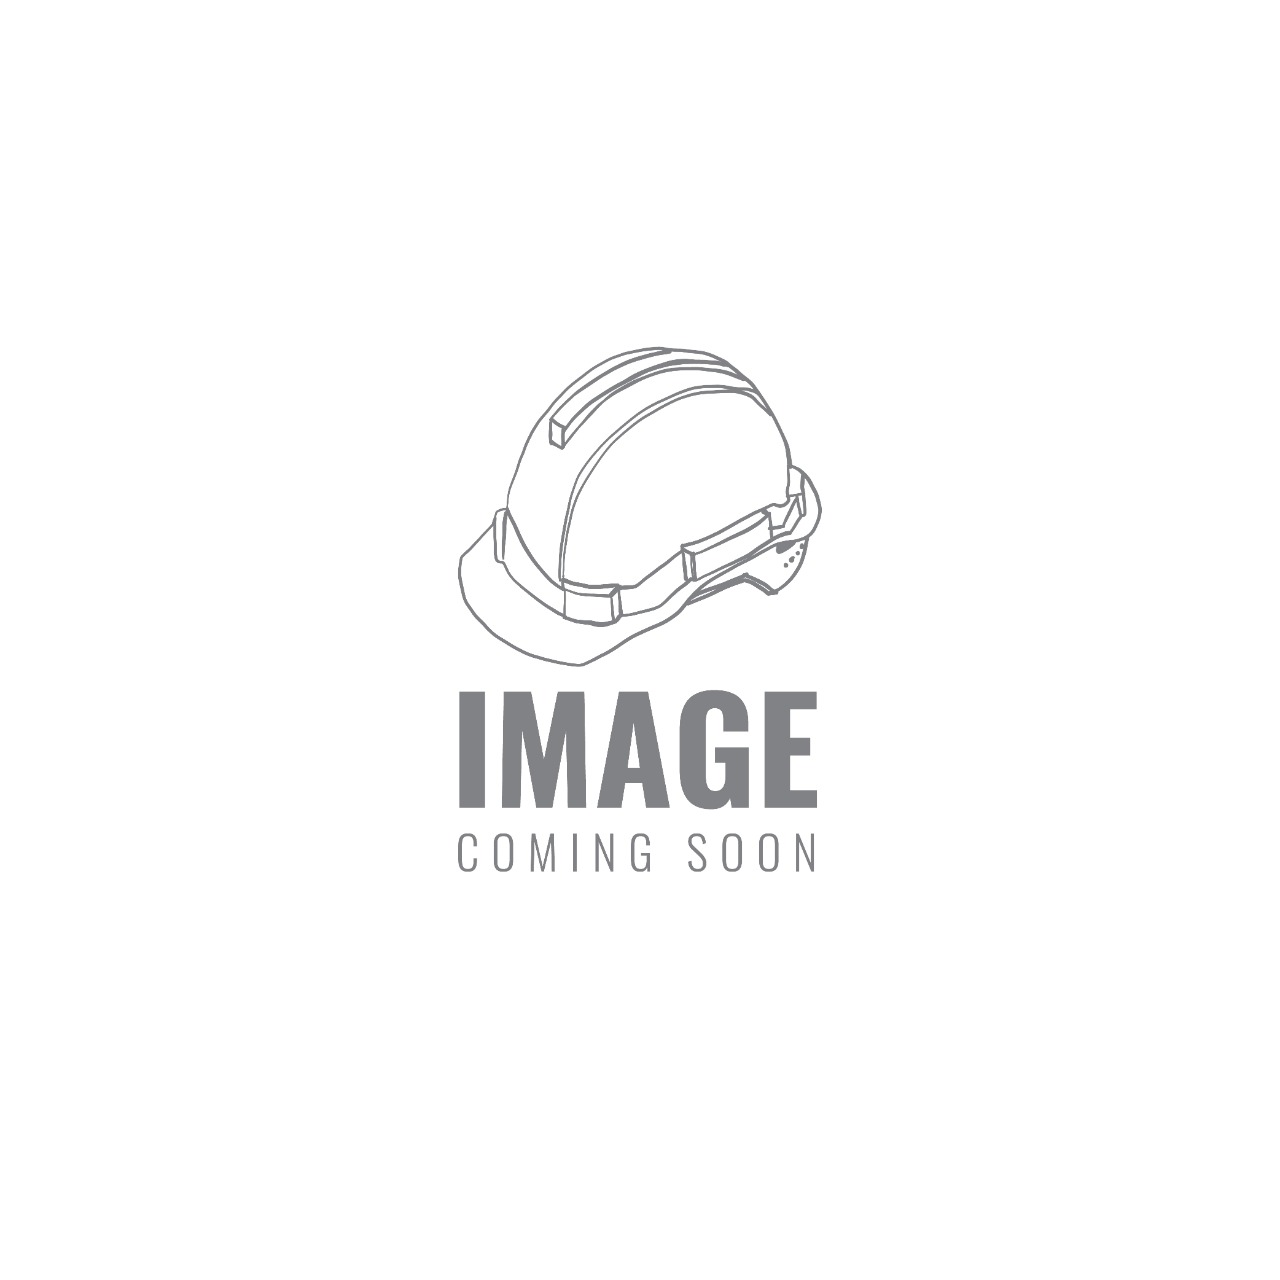 Streamlight Survivor C4 LED Zone 0 ATEX Rechargeable Orange Flashlight Intrinsically Safe with 230 volt AC/12 volt DC Charger